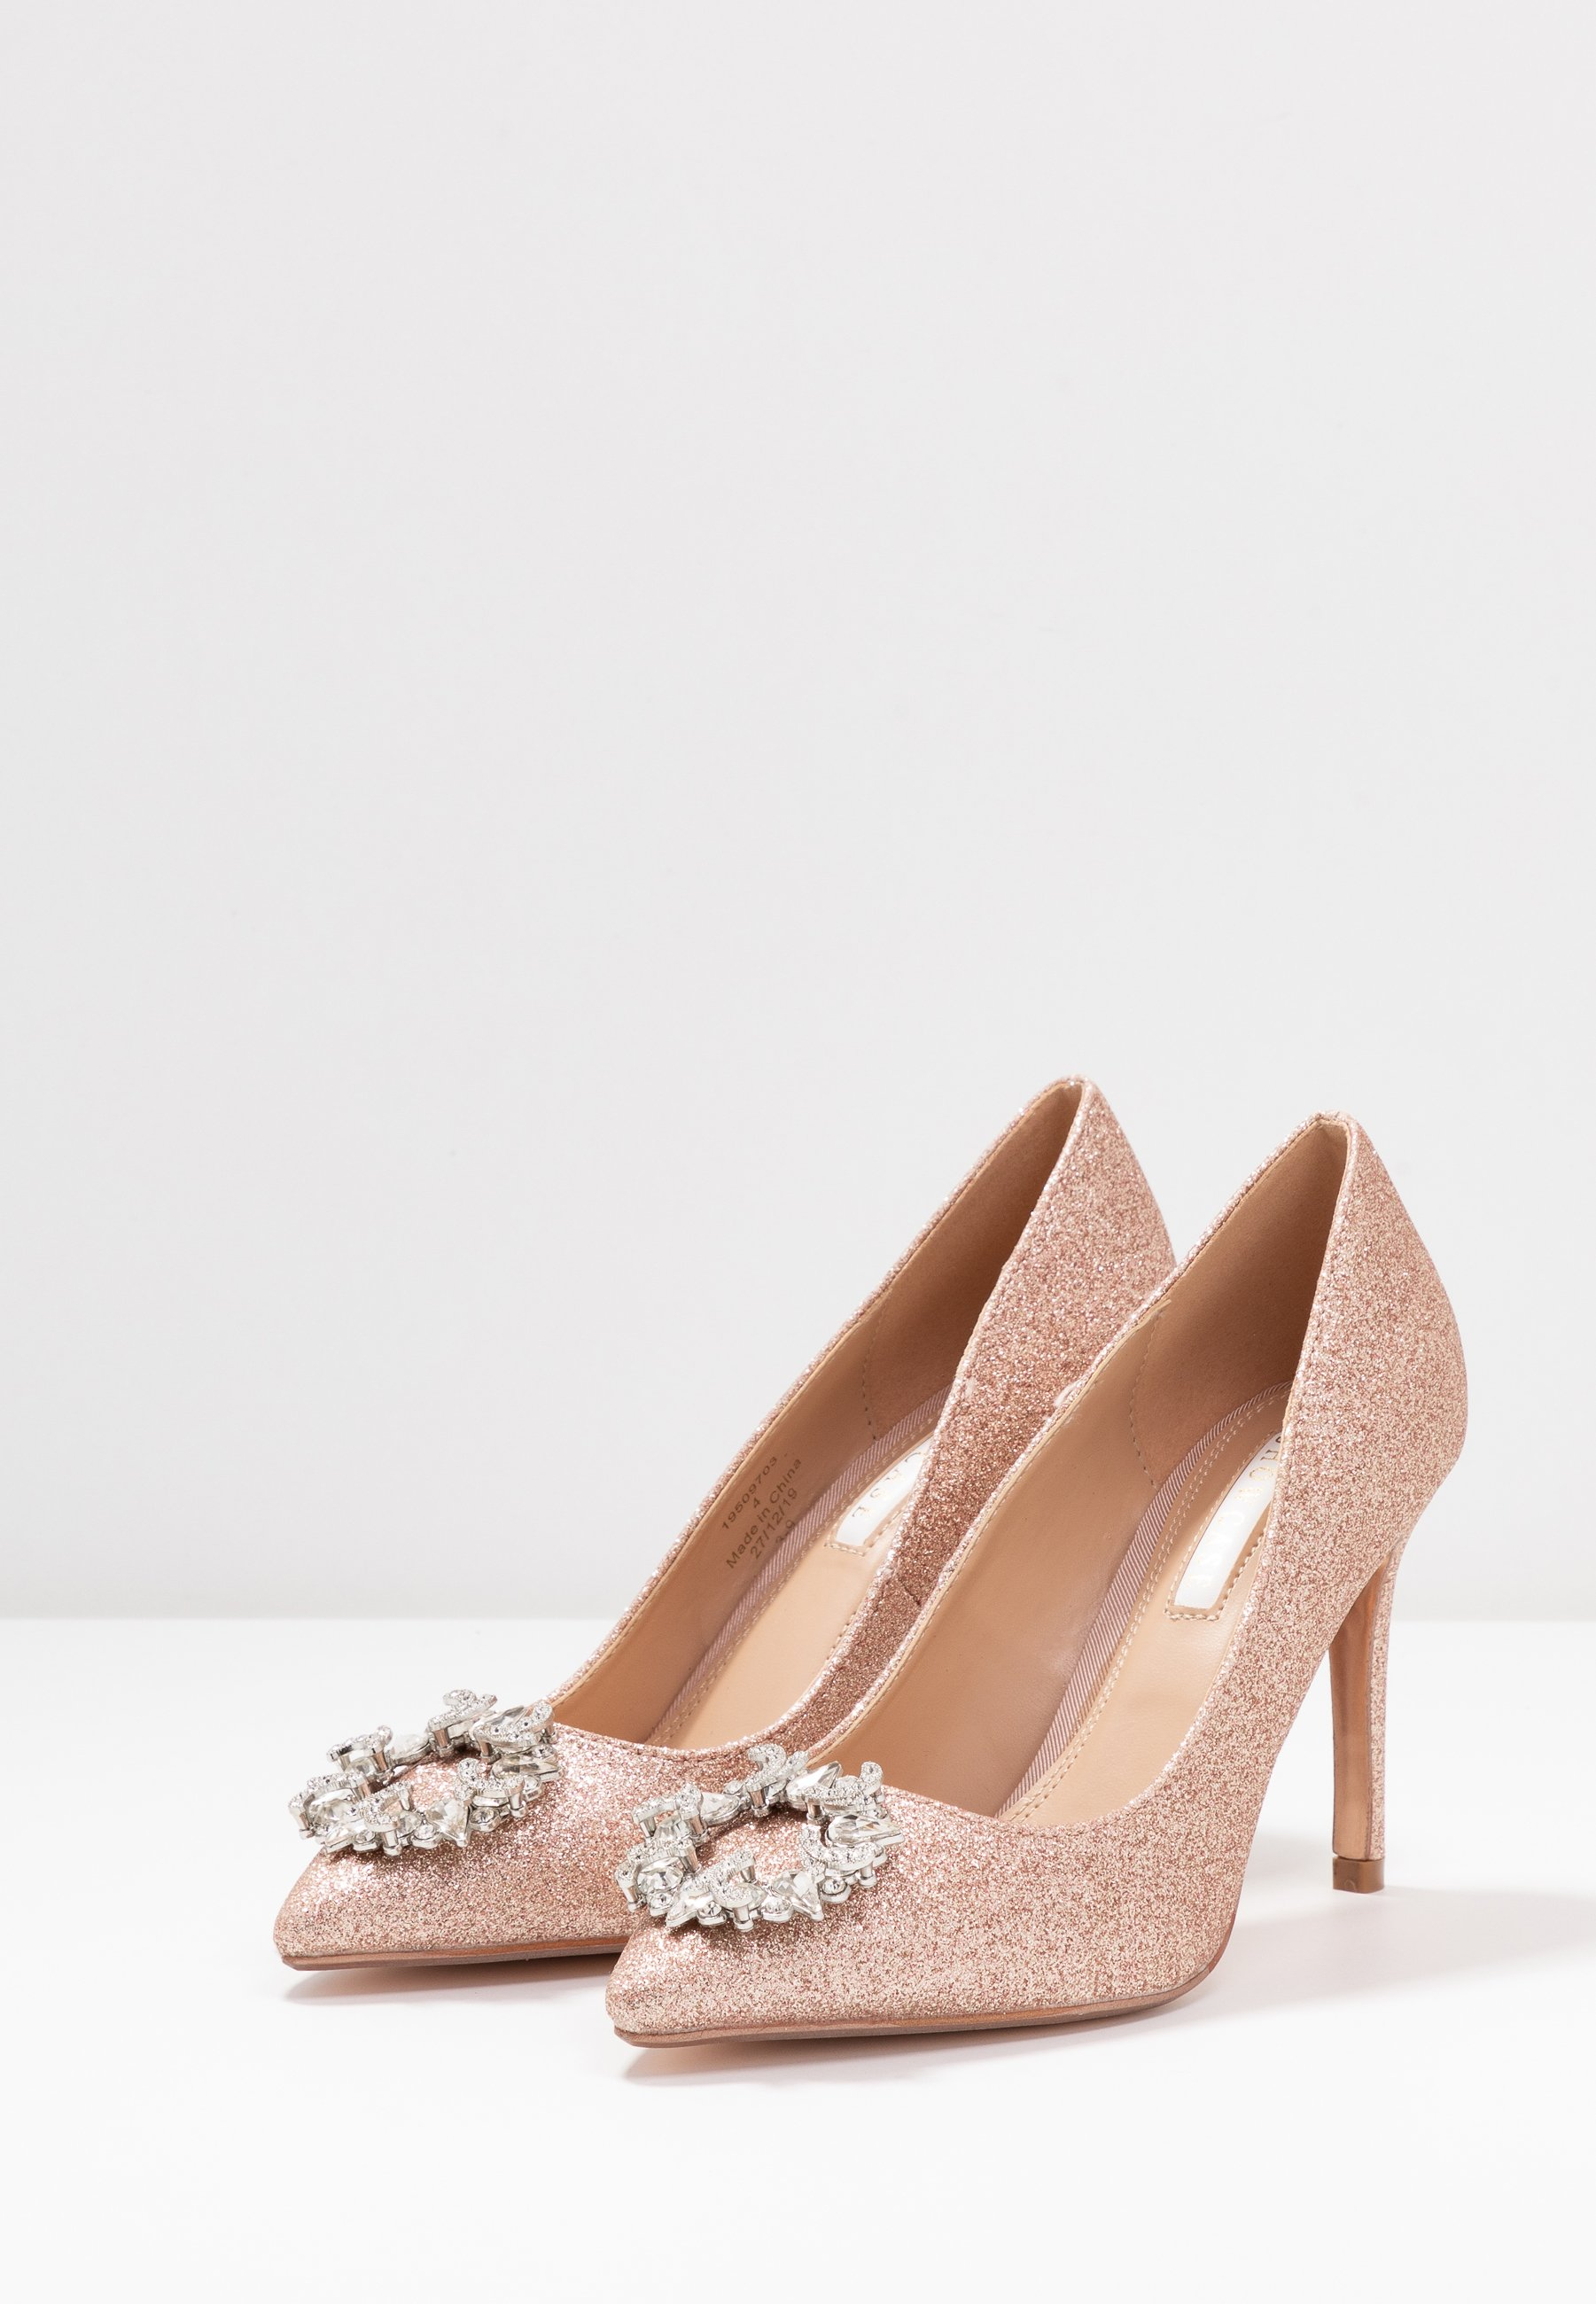 Dorothy Perkins GLADLY POINTED TRIM COURT - Decolleté - pink hfZF967N